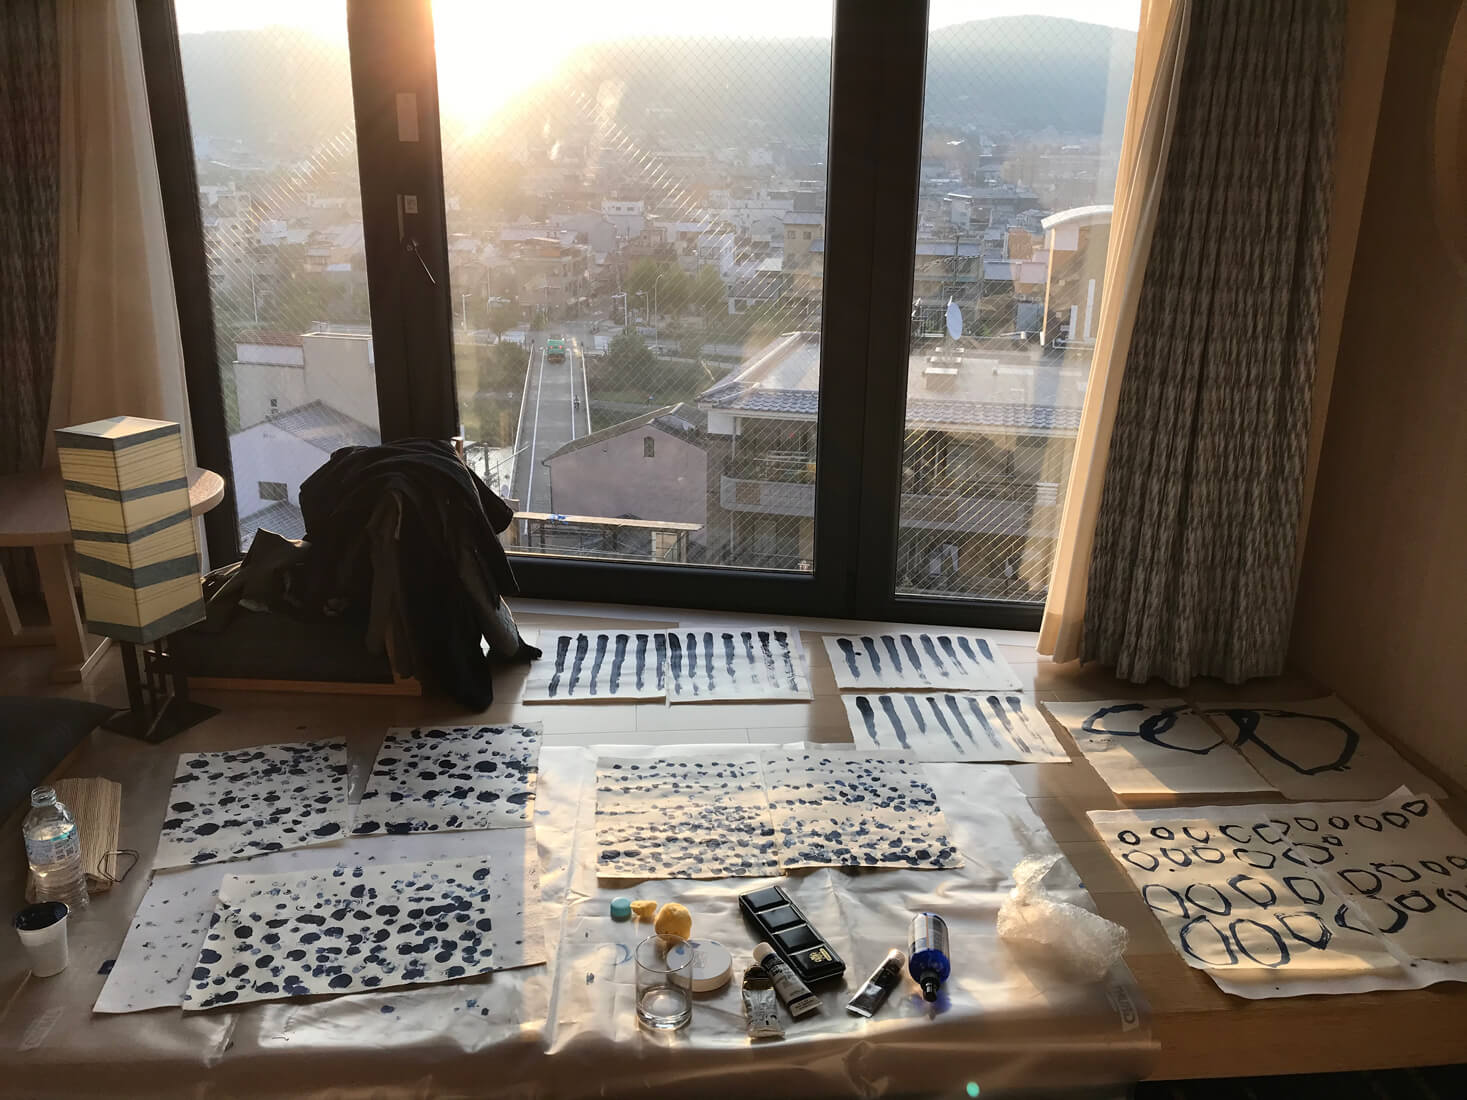 Kyoto Studio Japan, September 2019